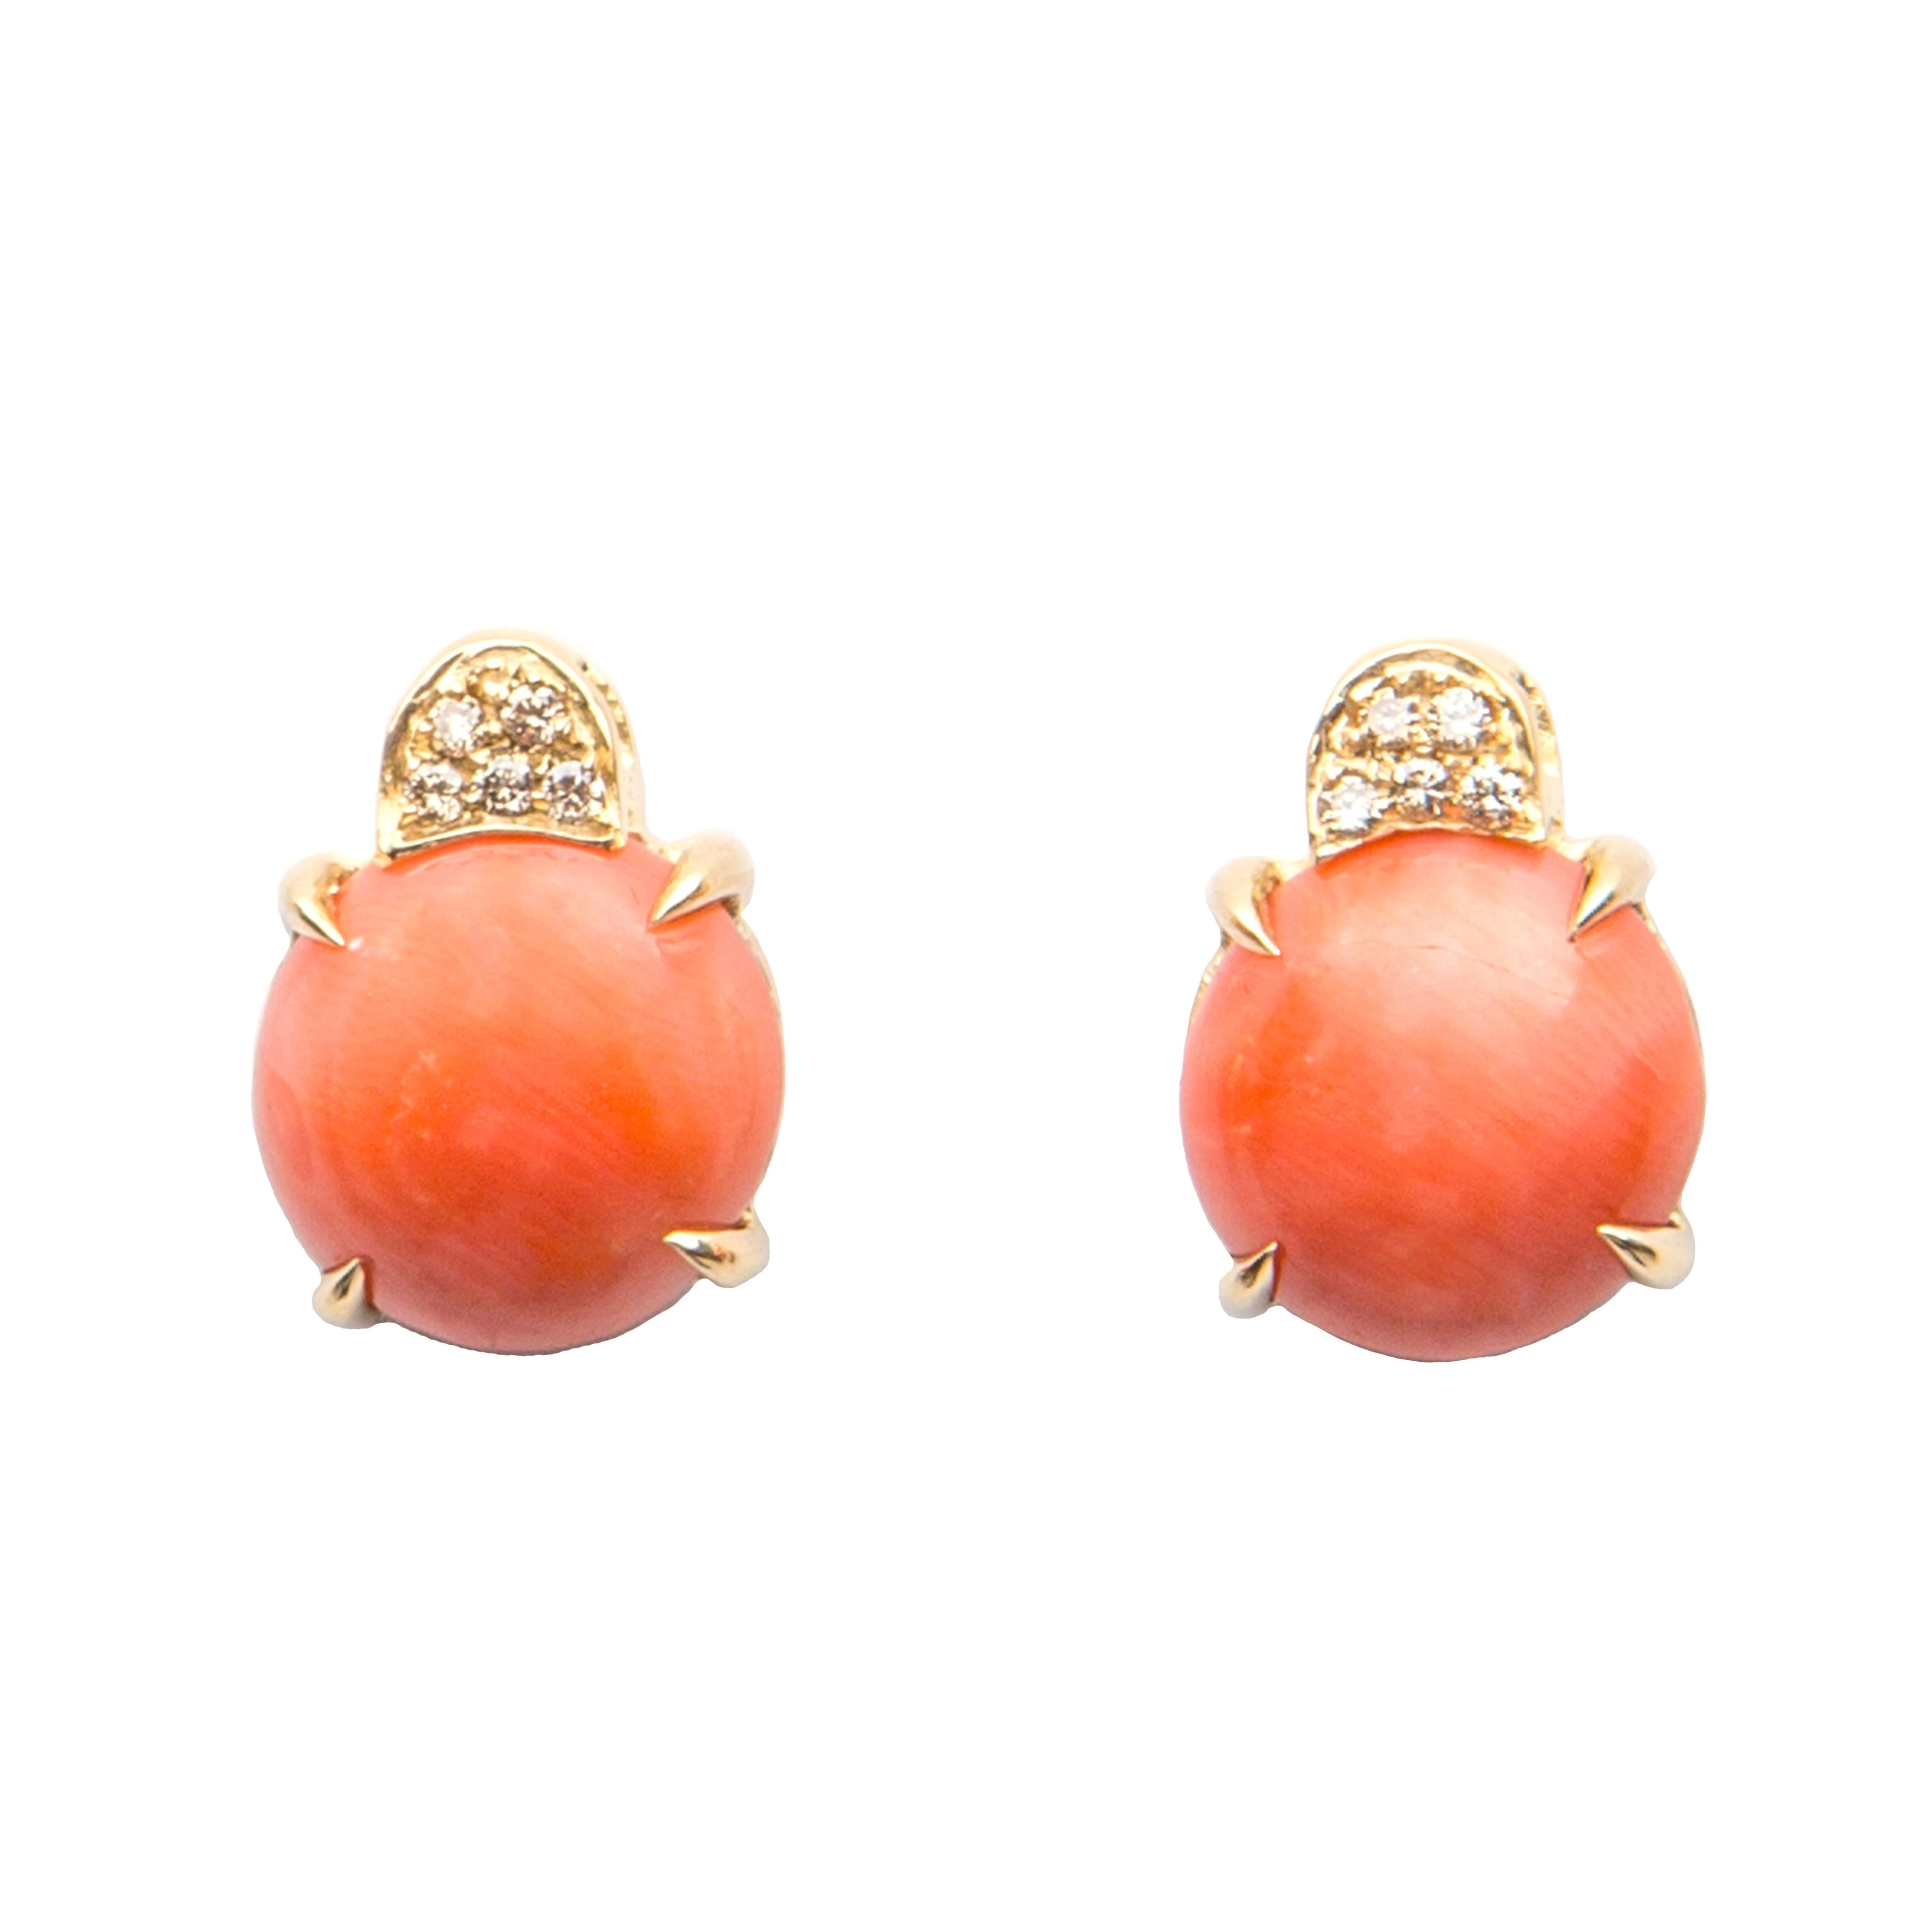 Orange Coral and Brown Diamond Earrings in 18 Karat Yellow Gold Made in Italy